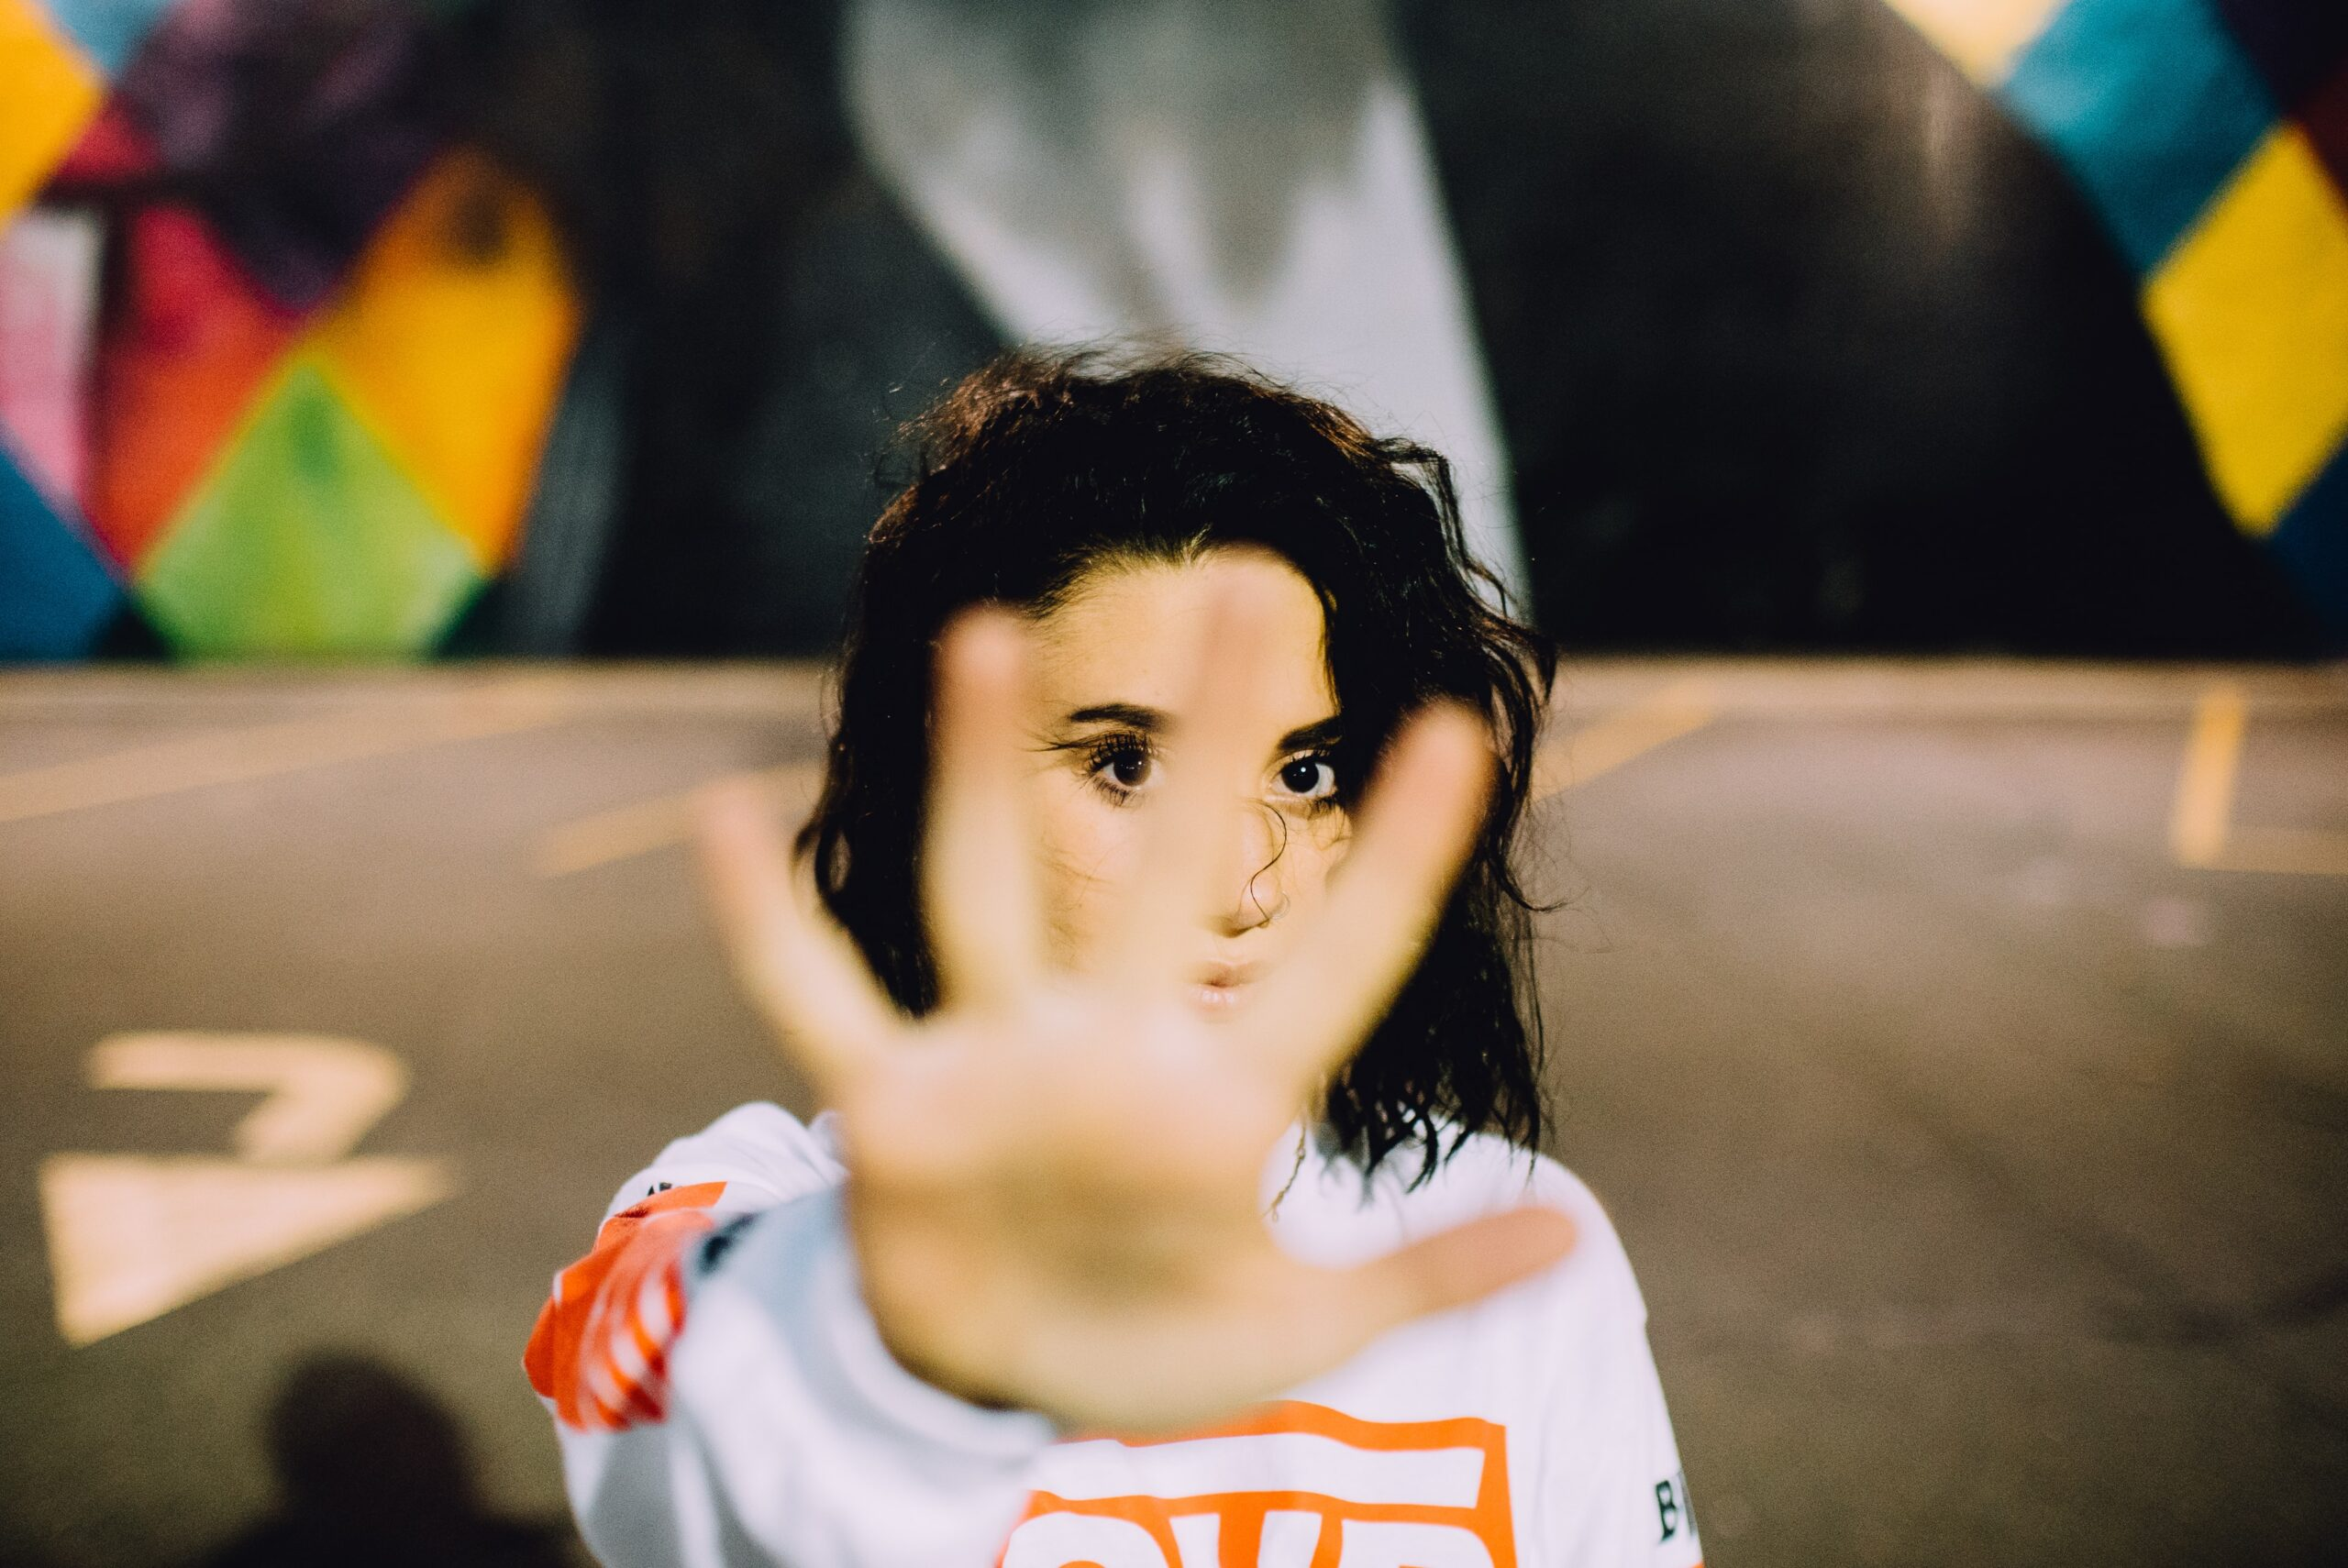 Woman with hand up in front of her, indicating no. Stop.